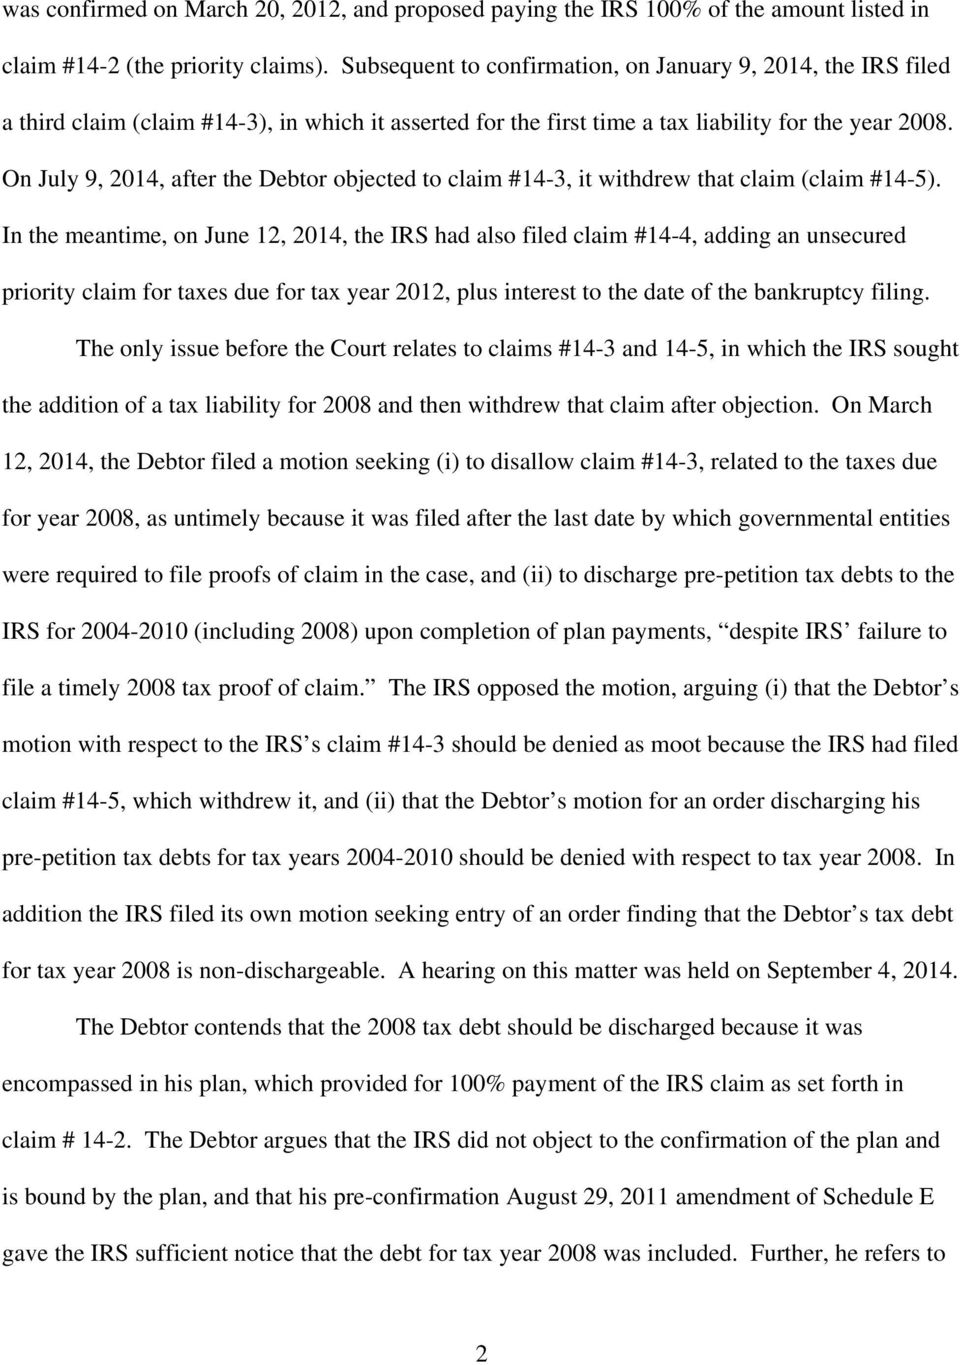 On July 9, 2014, after the Debtor objected to claim #14-3, it withdrew that claim (claim #14-5).